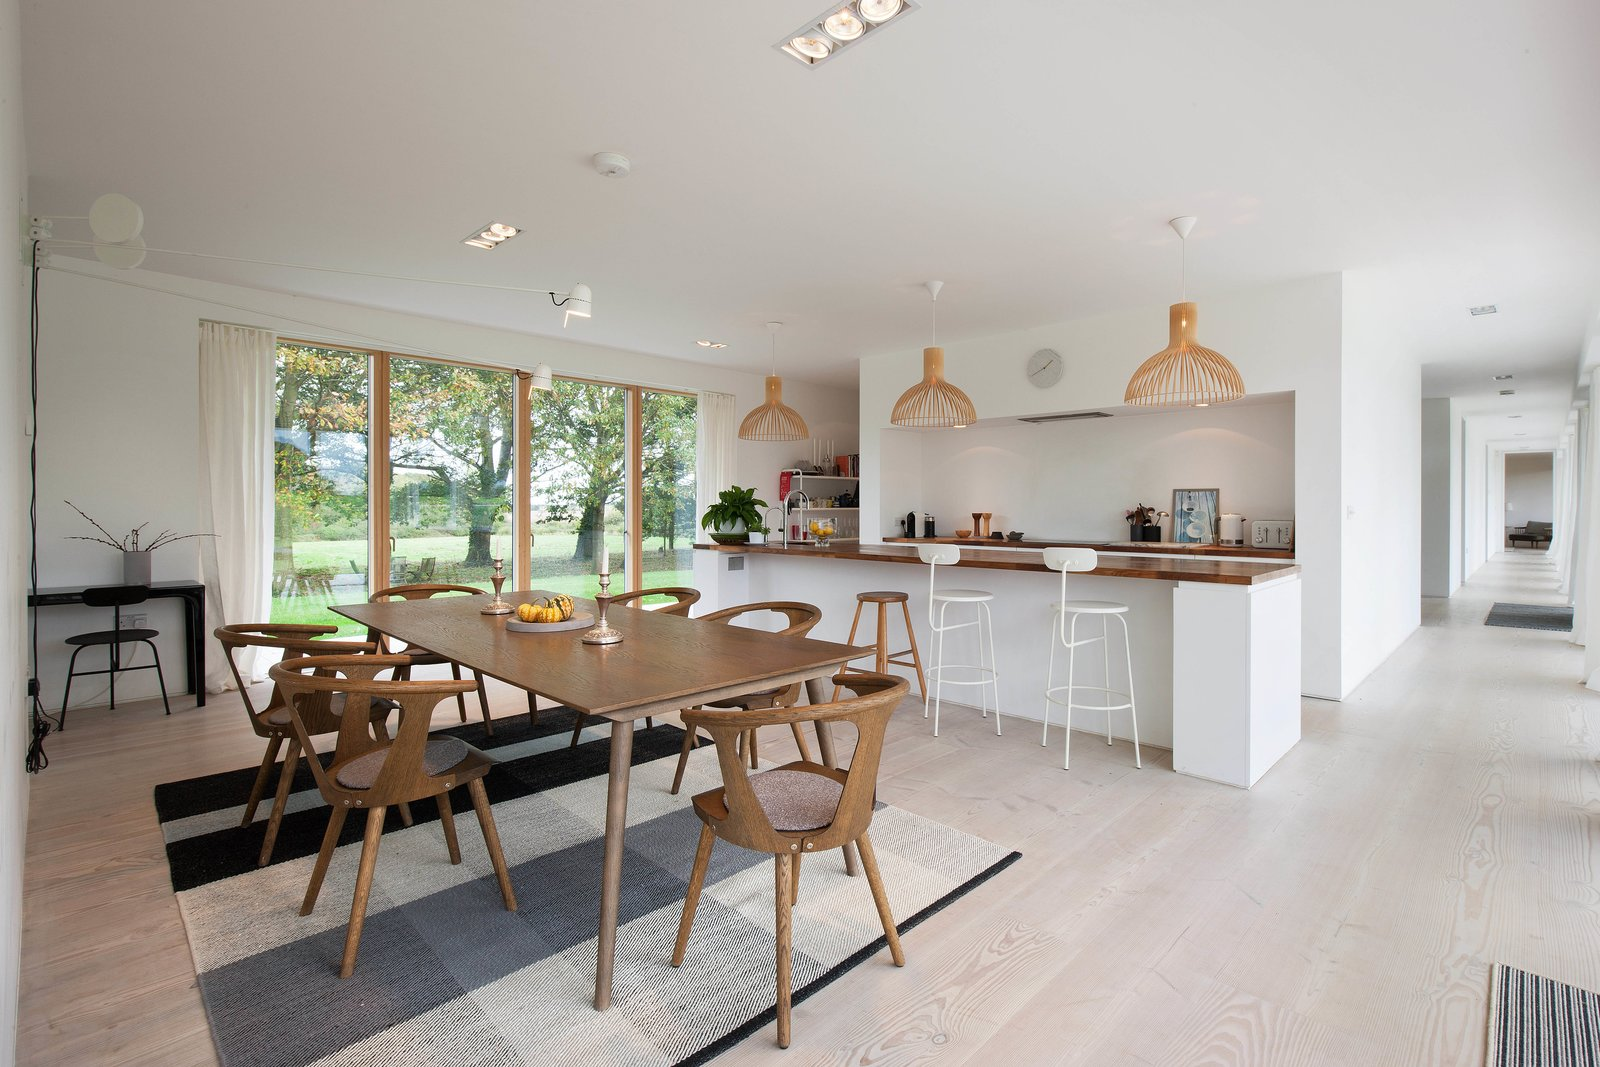 Dining Room, Stools, Recessed Lighting, Table, Light Hardwood Floor, Chair, Bar, Wall Lighting, and Pendant Lighting The bright, open, contemporary kitchen.  Photo 1 of 11 in A Scandinavian-Style Pavilion in England Is Listed For $2.1M